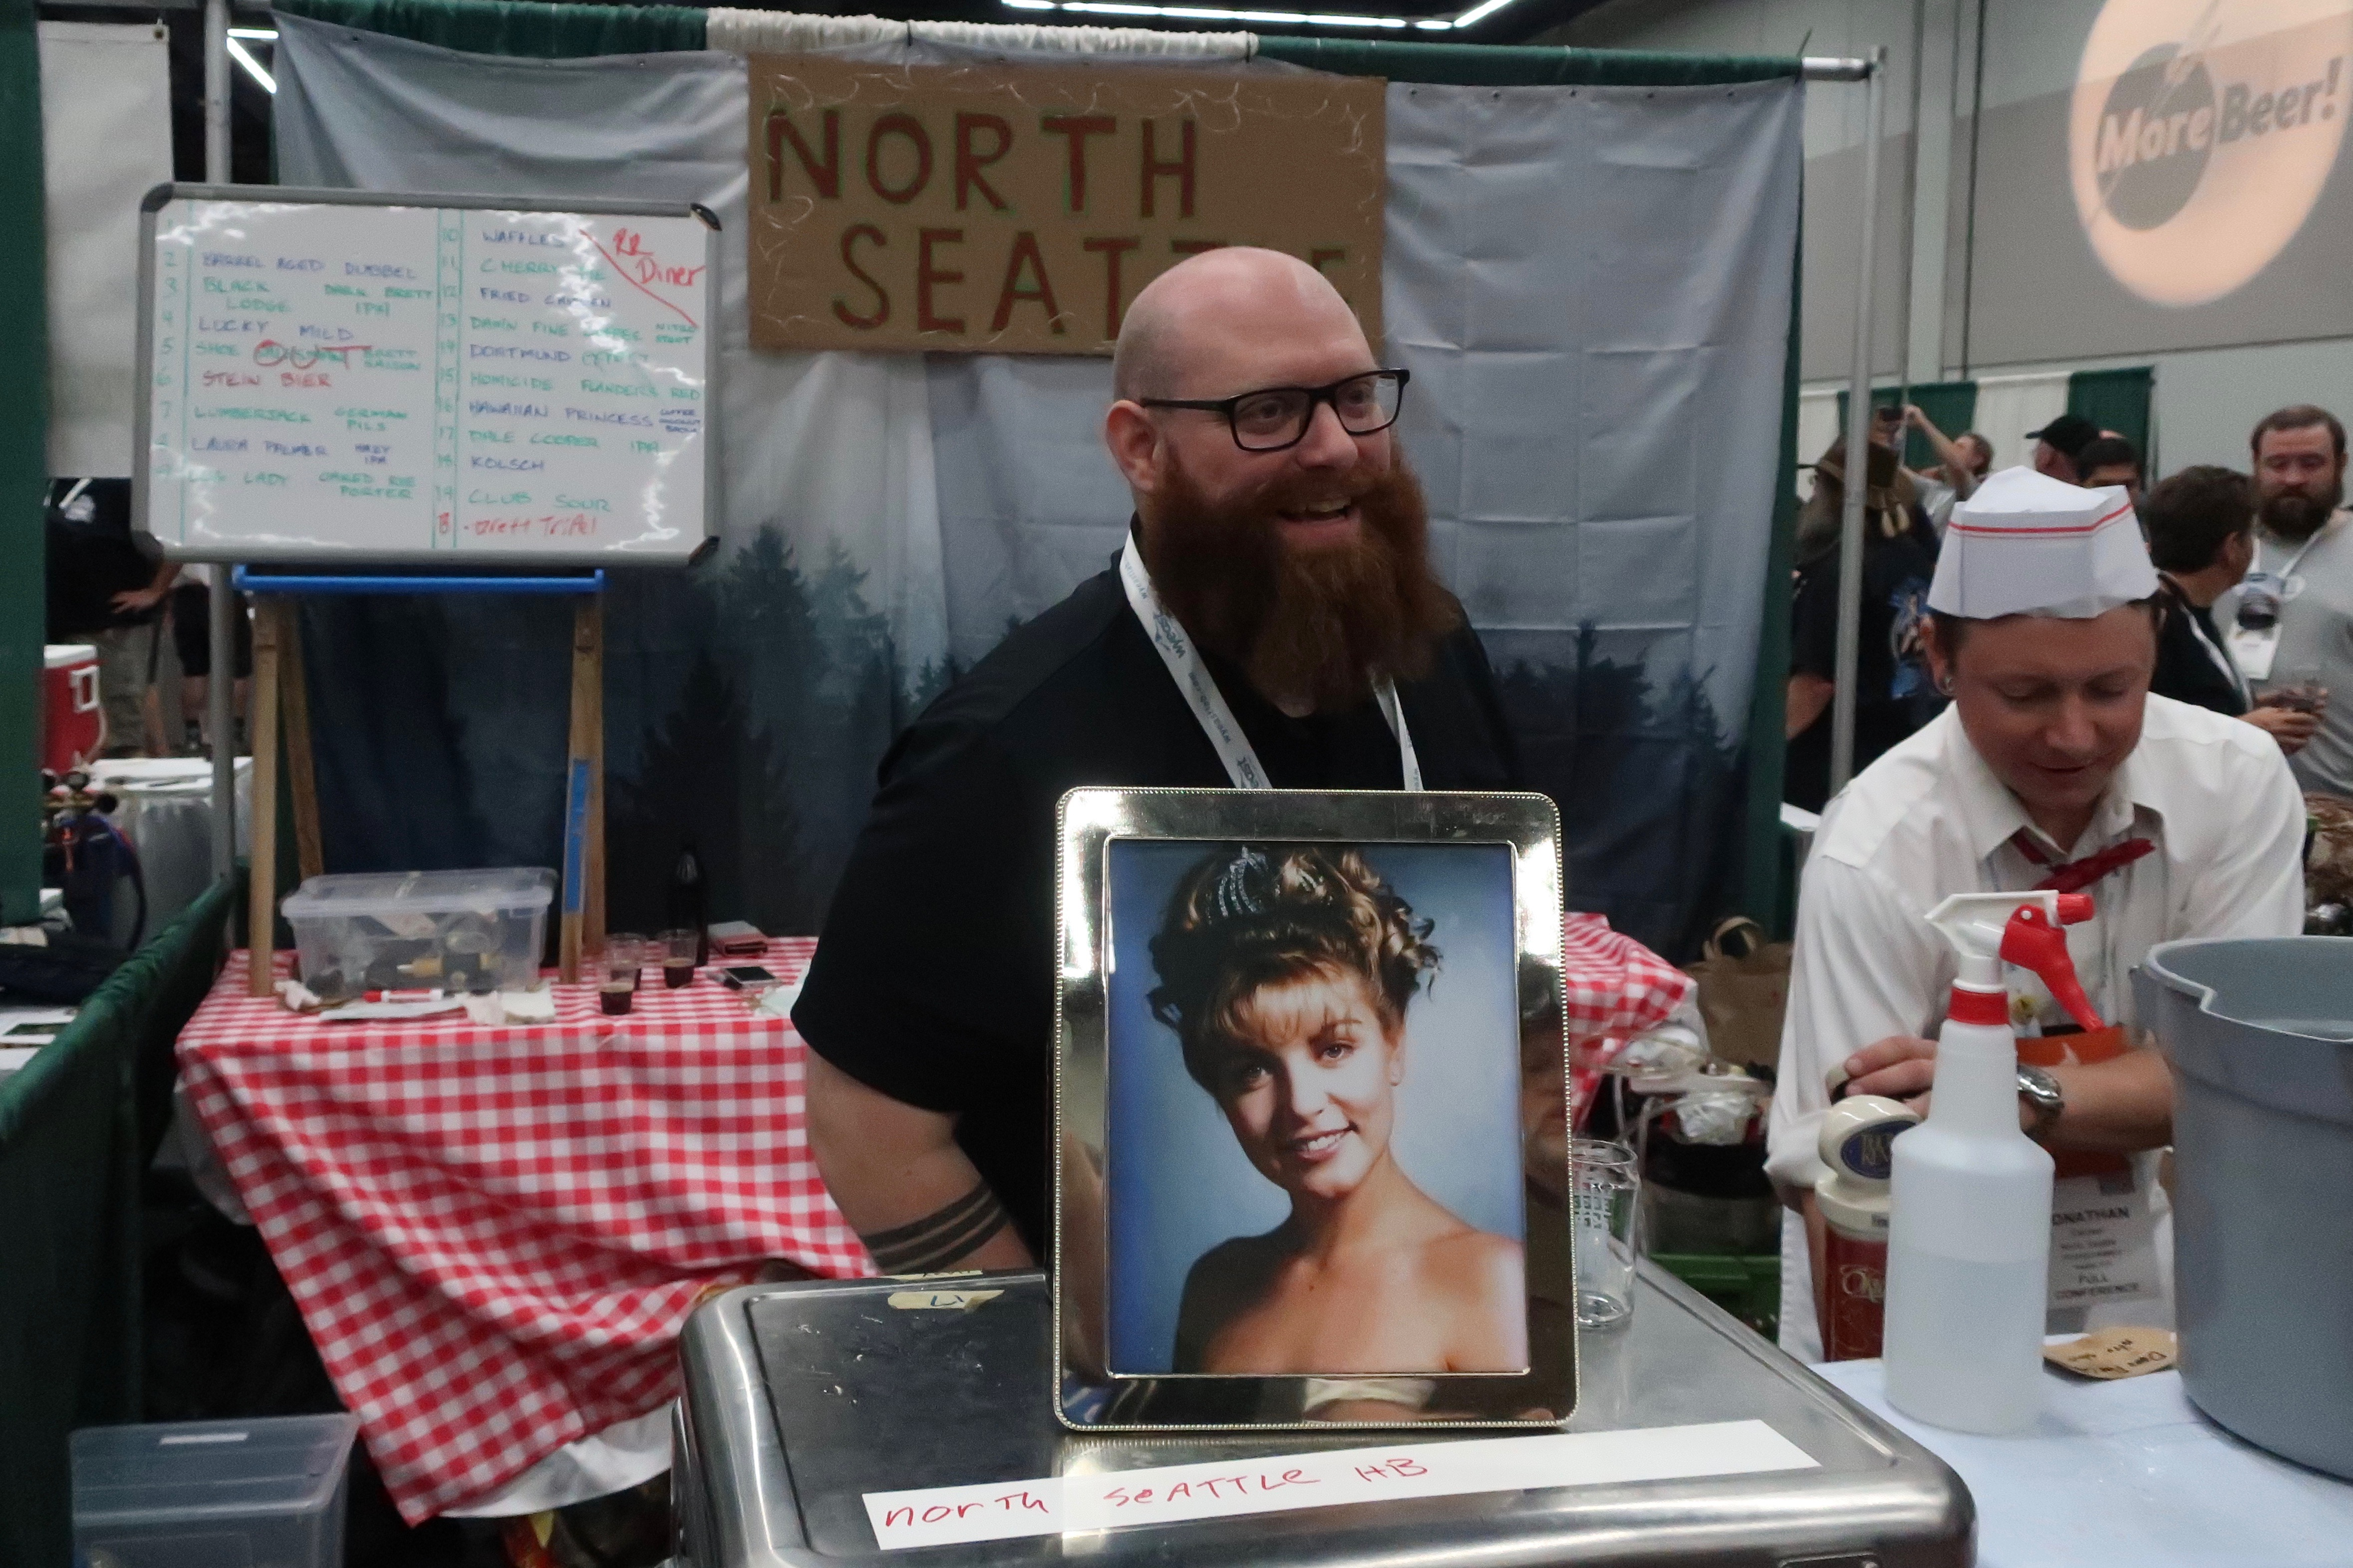 North Seattle Homebrew Club with its Twin Peaks themed booth during Club Night at Homebrew Con 2018.